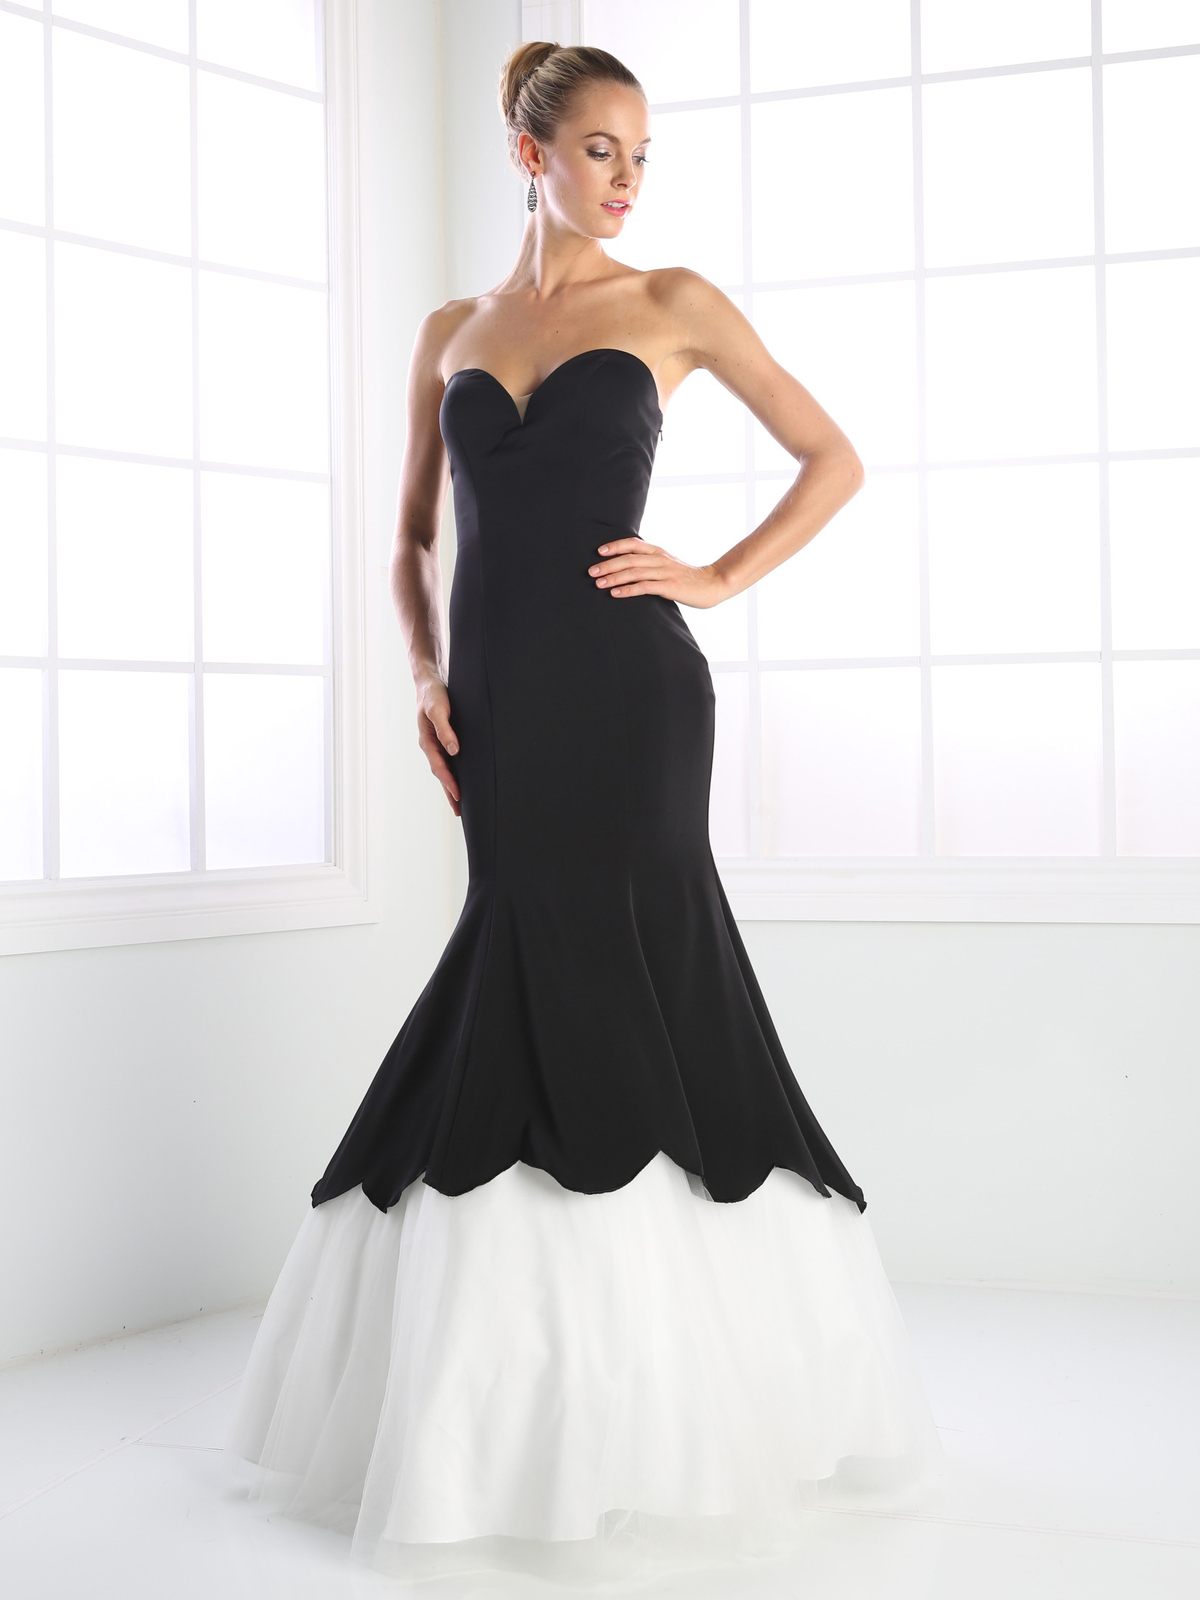 Strapless Sweetheart Formal Gown with Mermaid Hem   Sung Boutique L.A.